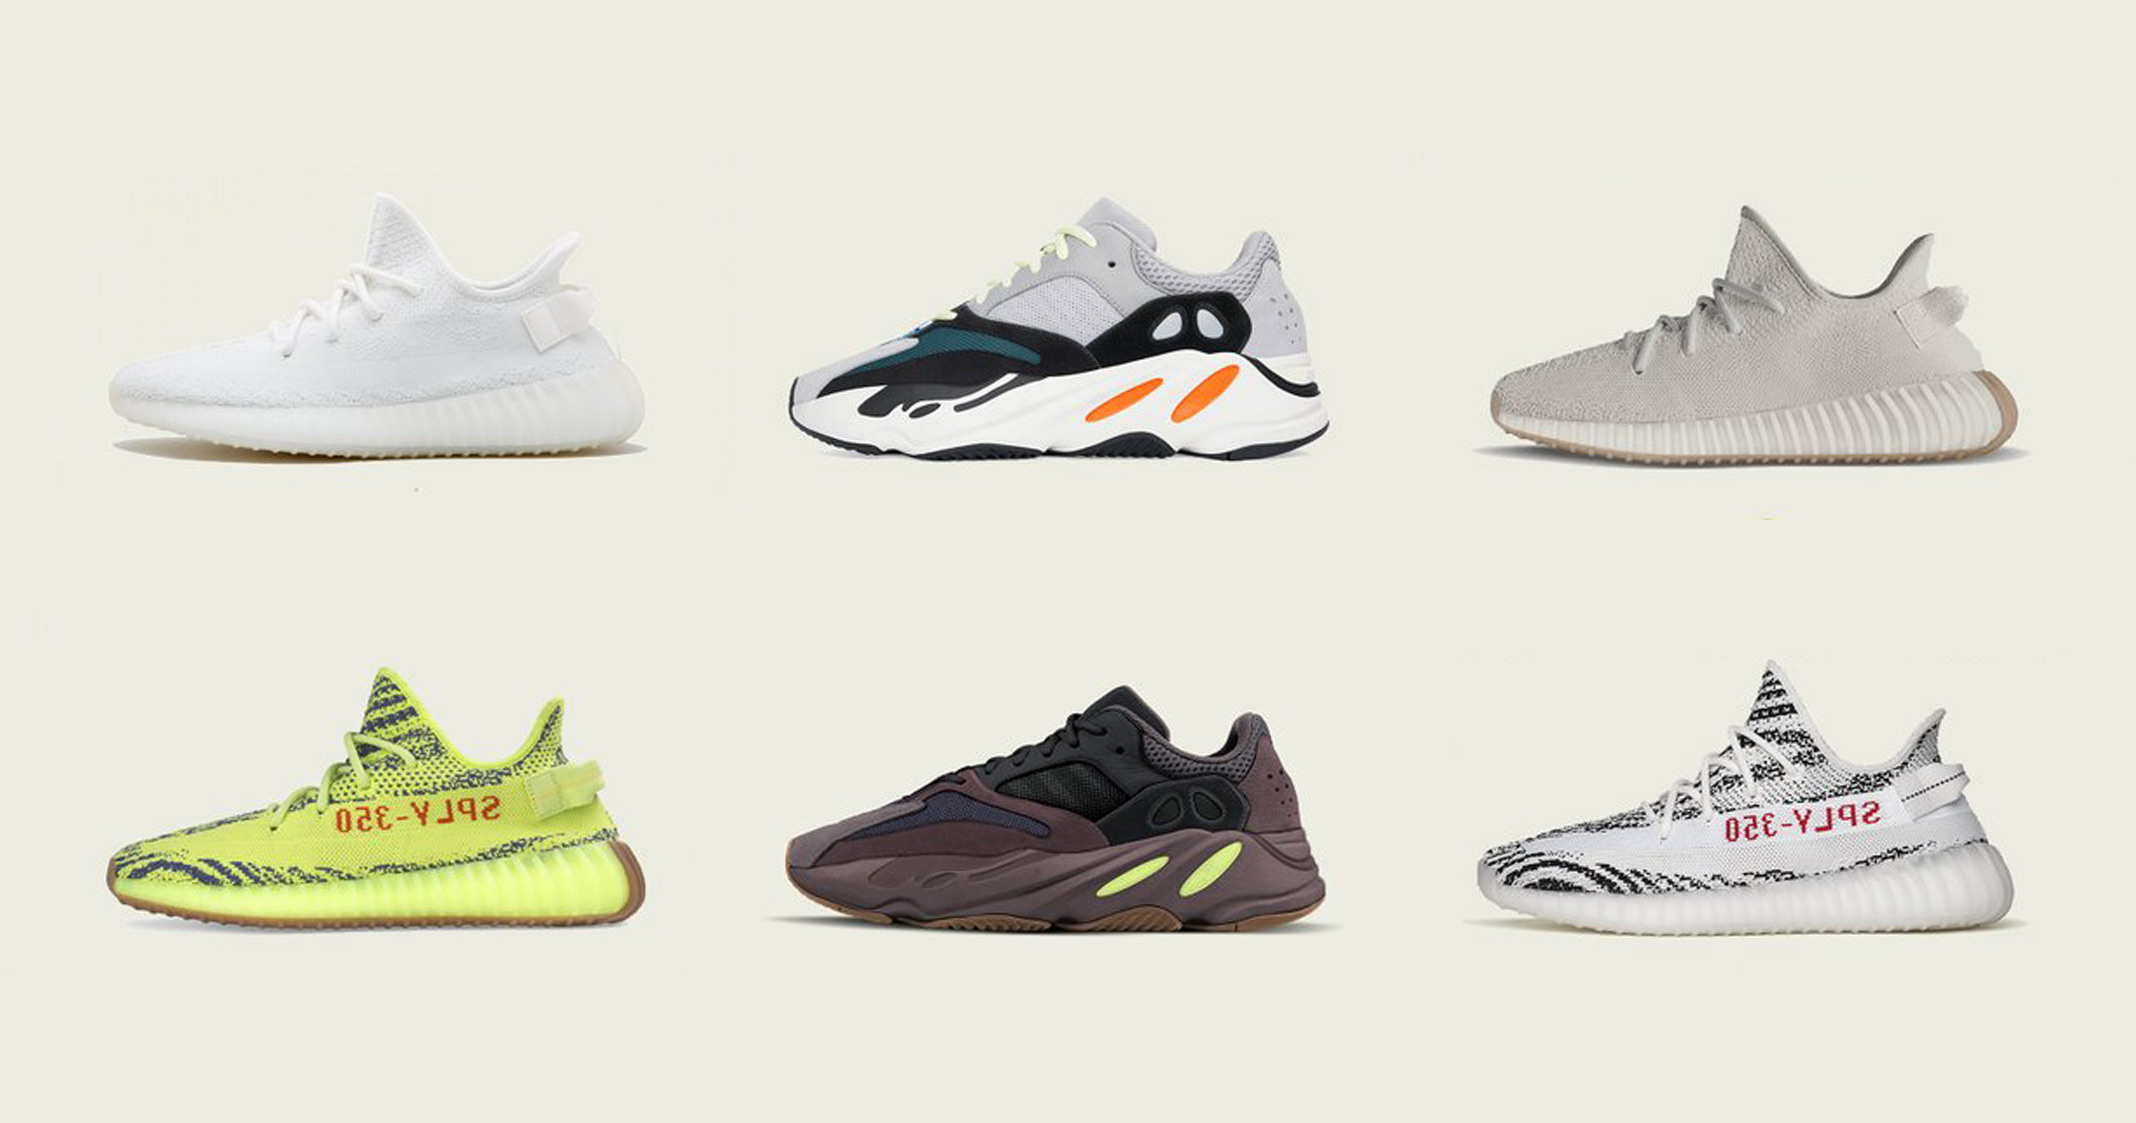 8dd723eb8 There s a HUGE Yeezy Restock on the way - HOUSE OF HEAT